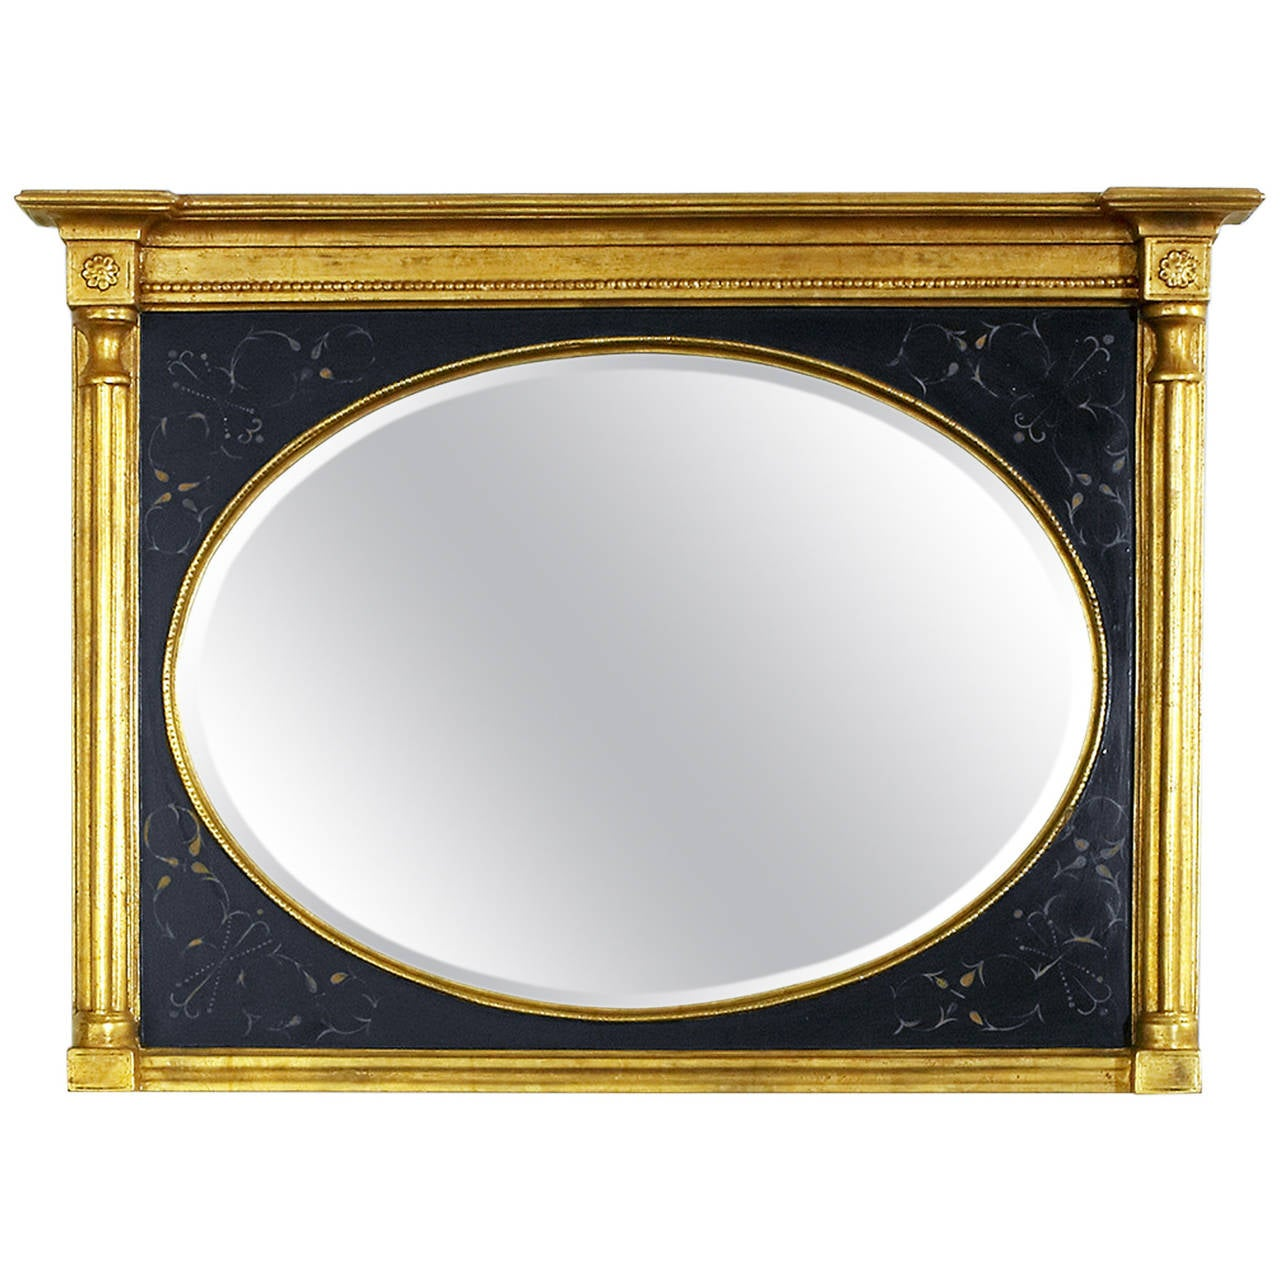 Black and Gold Mirror with Bevel Over Man's Chest For Sale